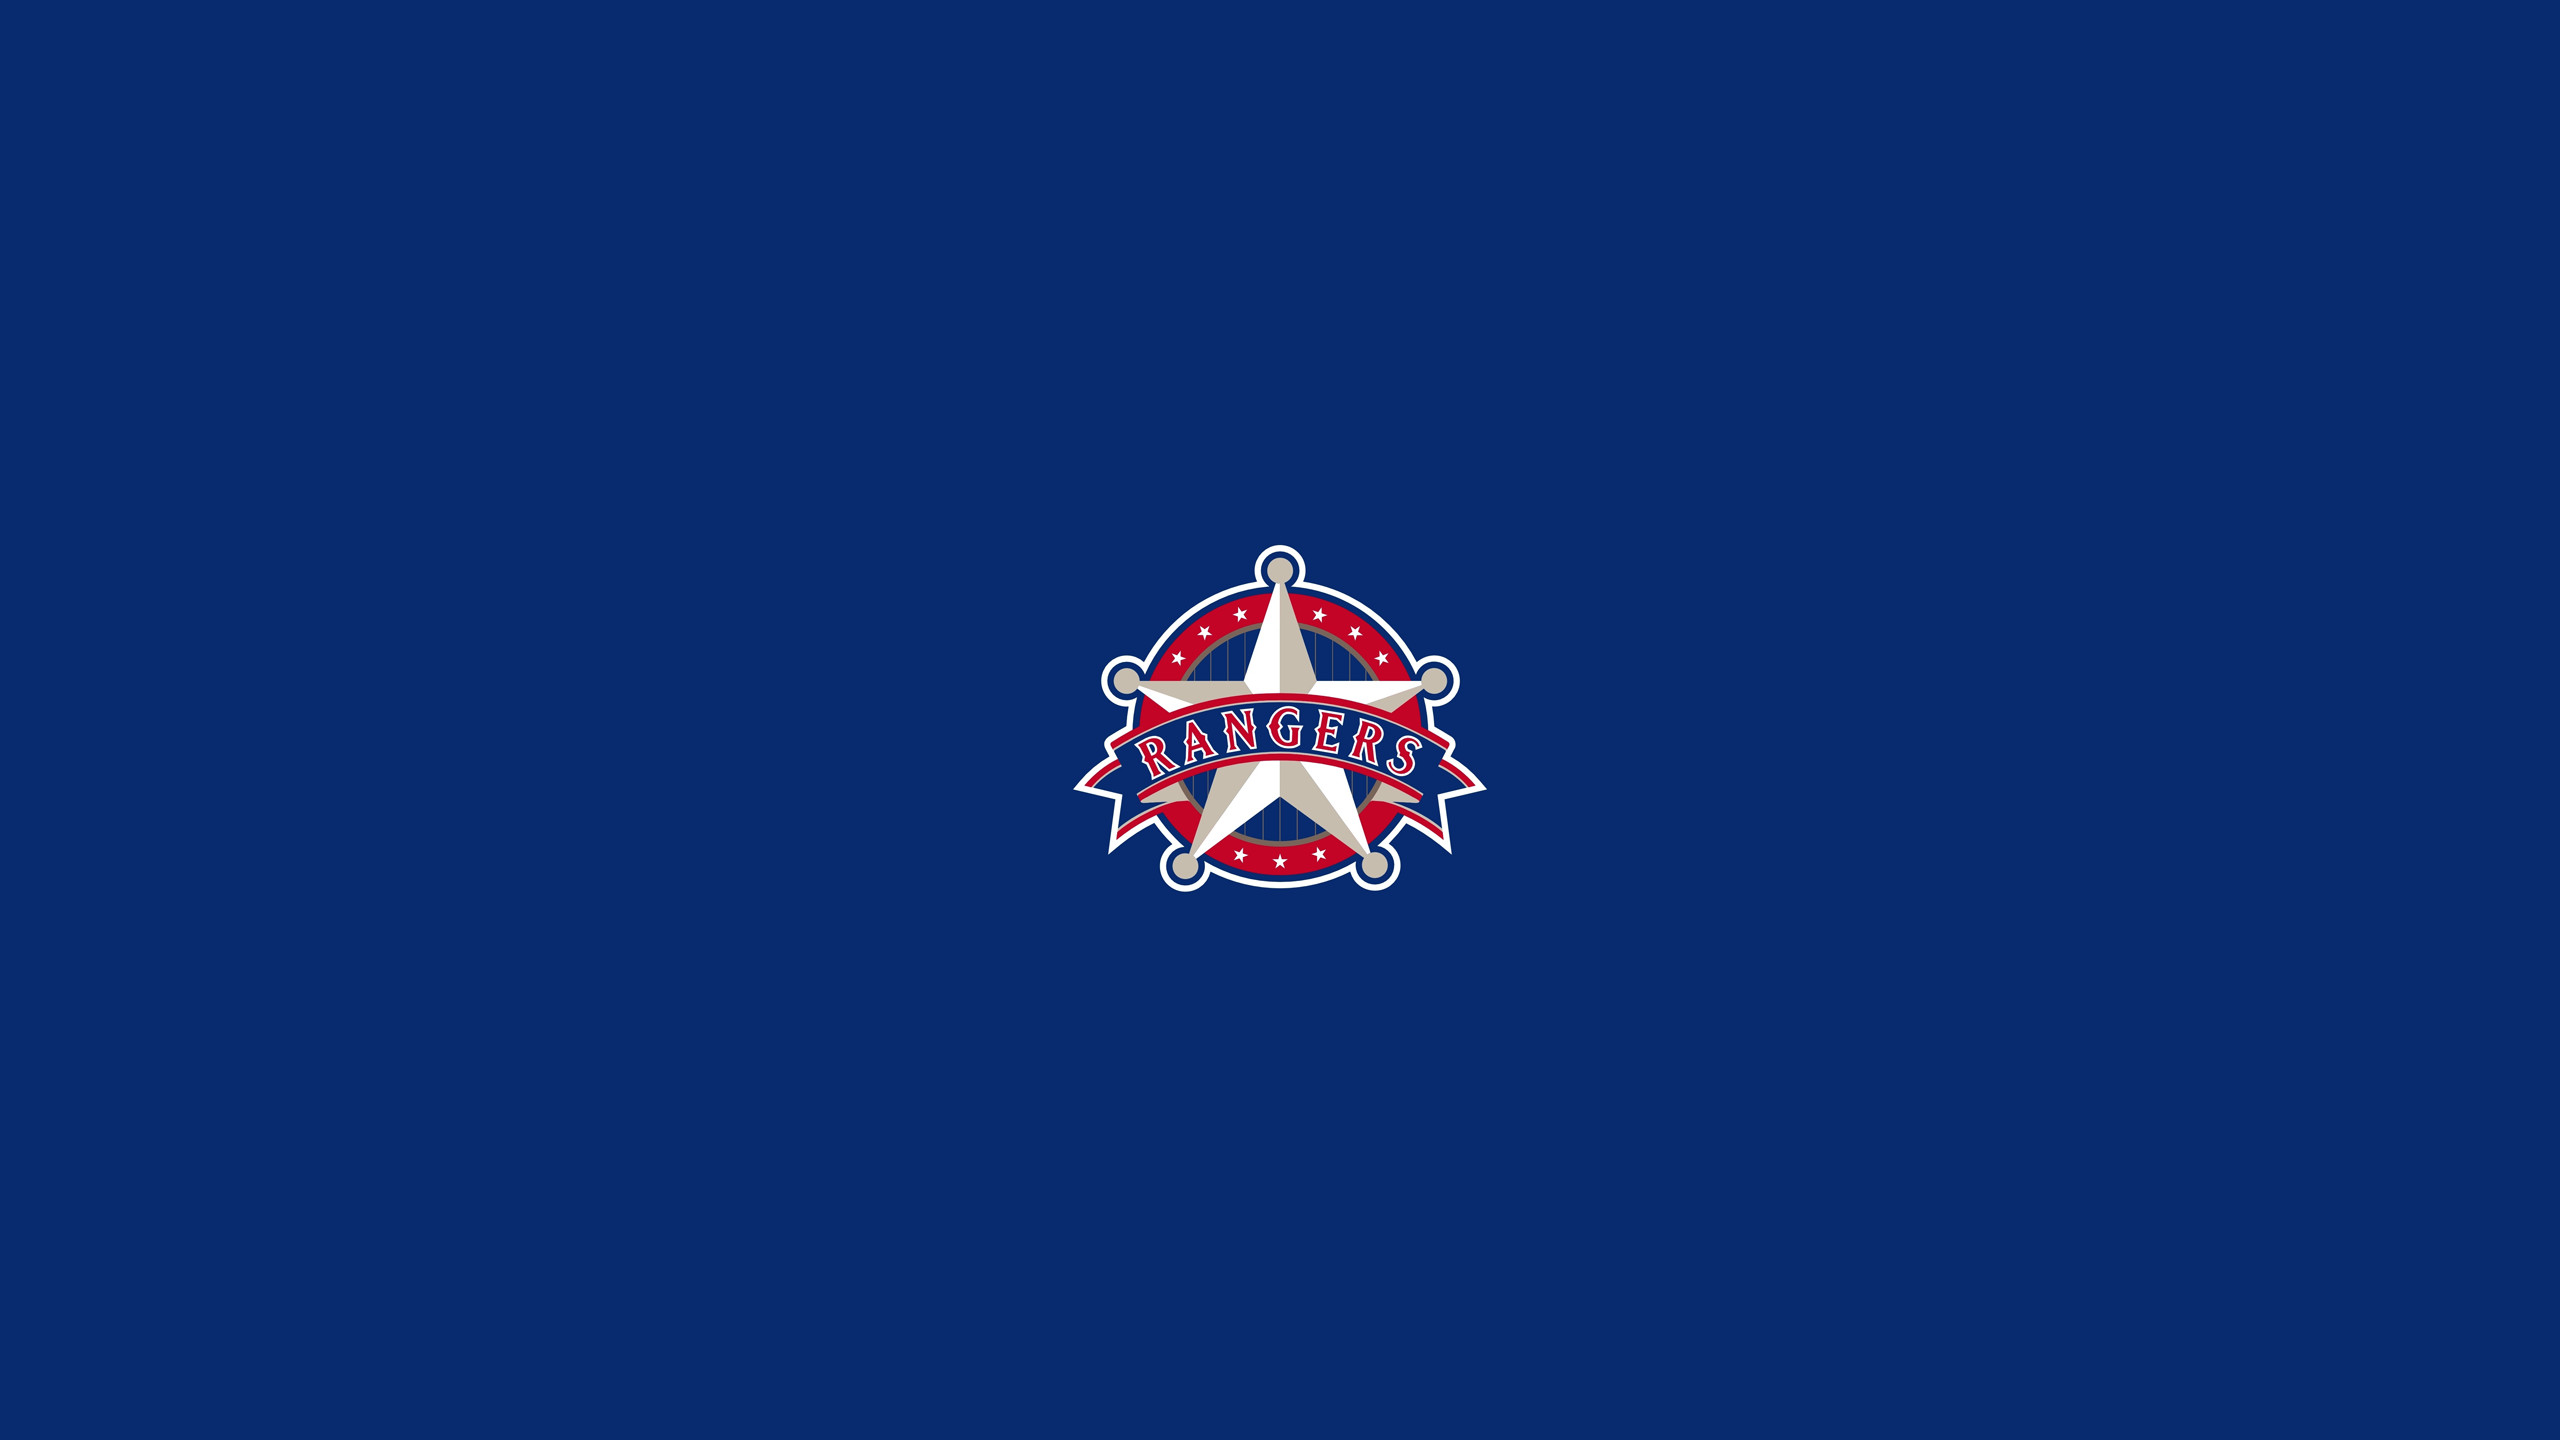 2560x1440 Texas Rangers baseball iPhone wallpapers Pinterest Texas